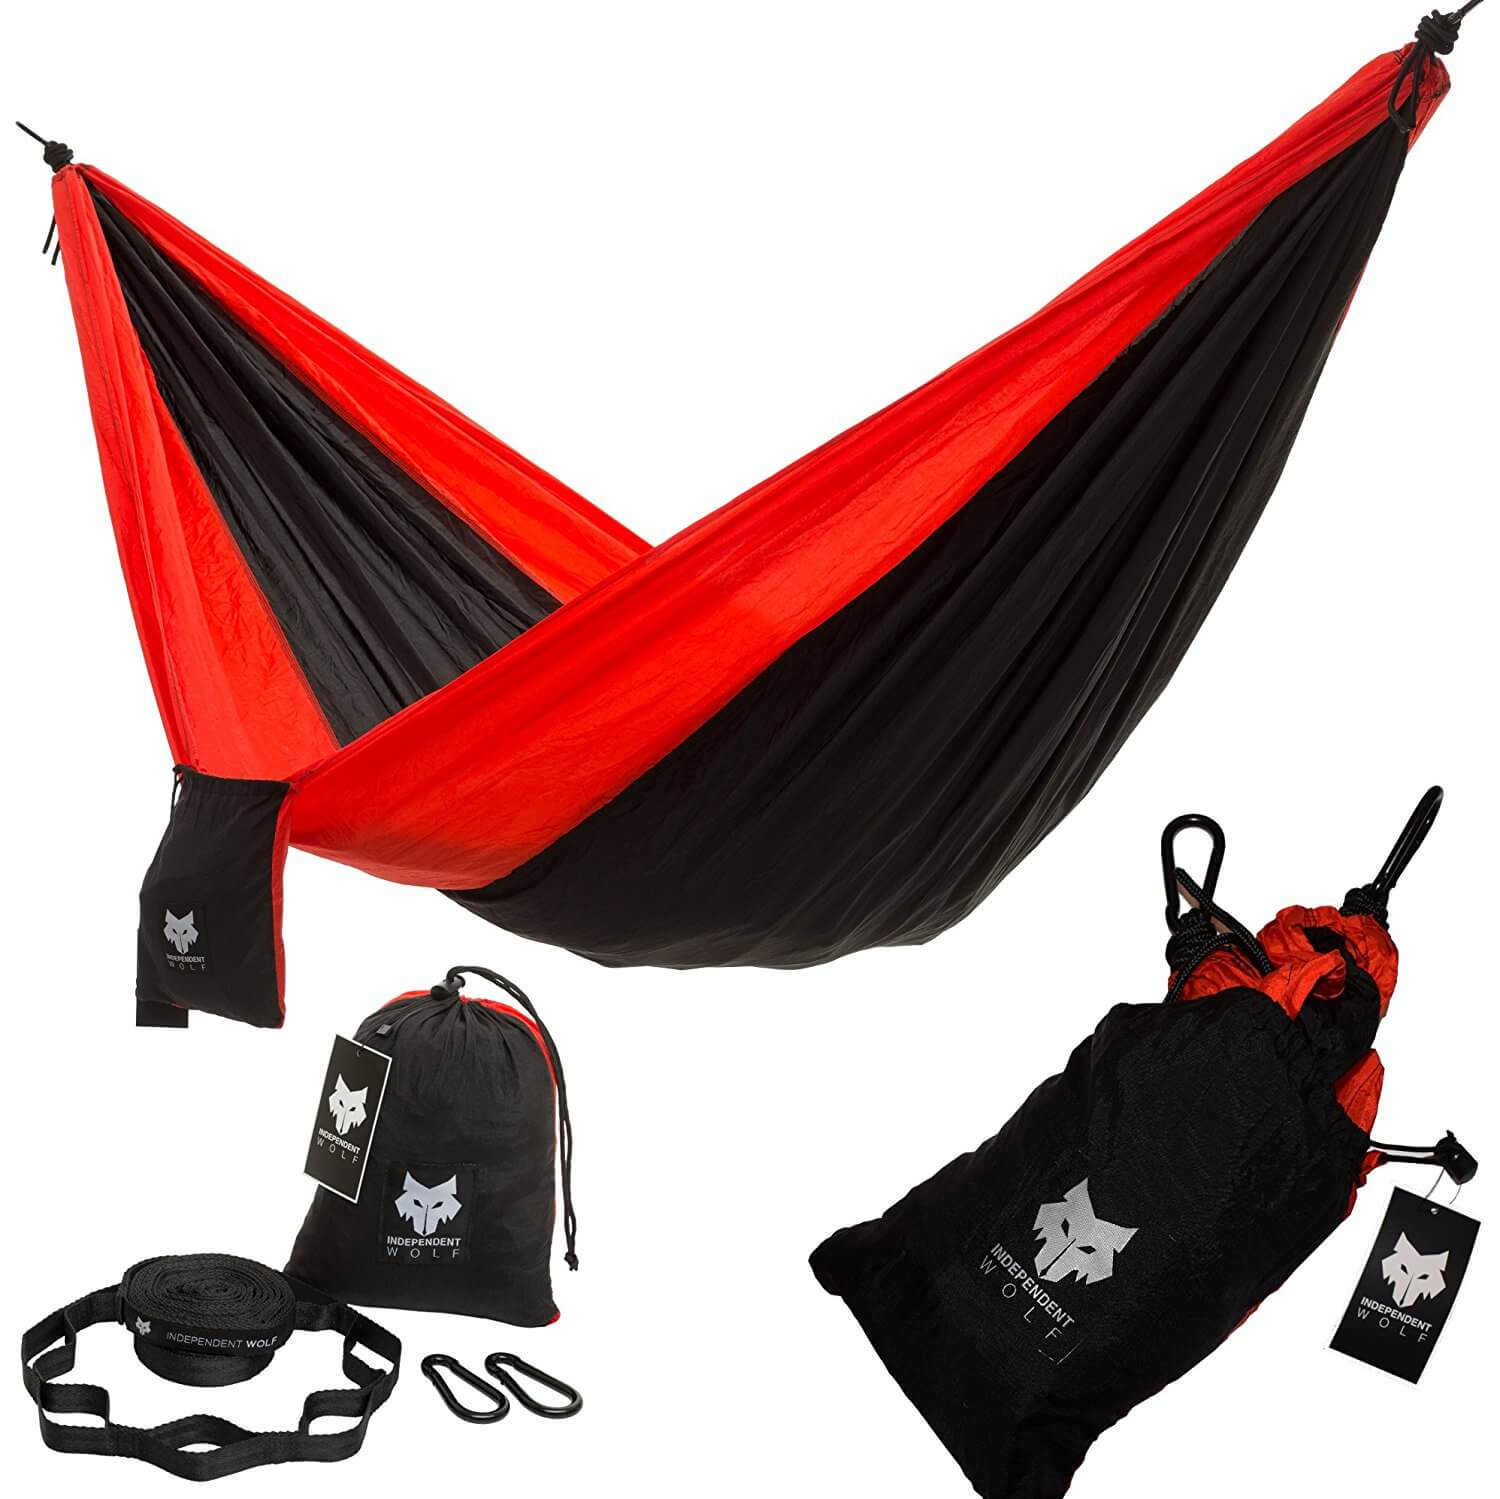 sportsman in camping p hammock vivere provisions red person eno tribe to click single expand